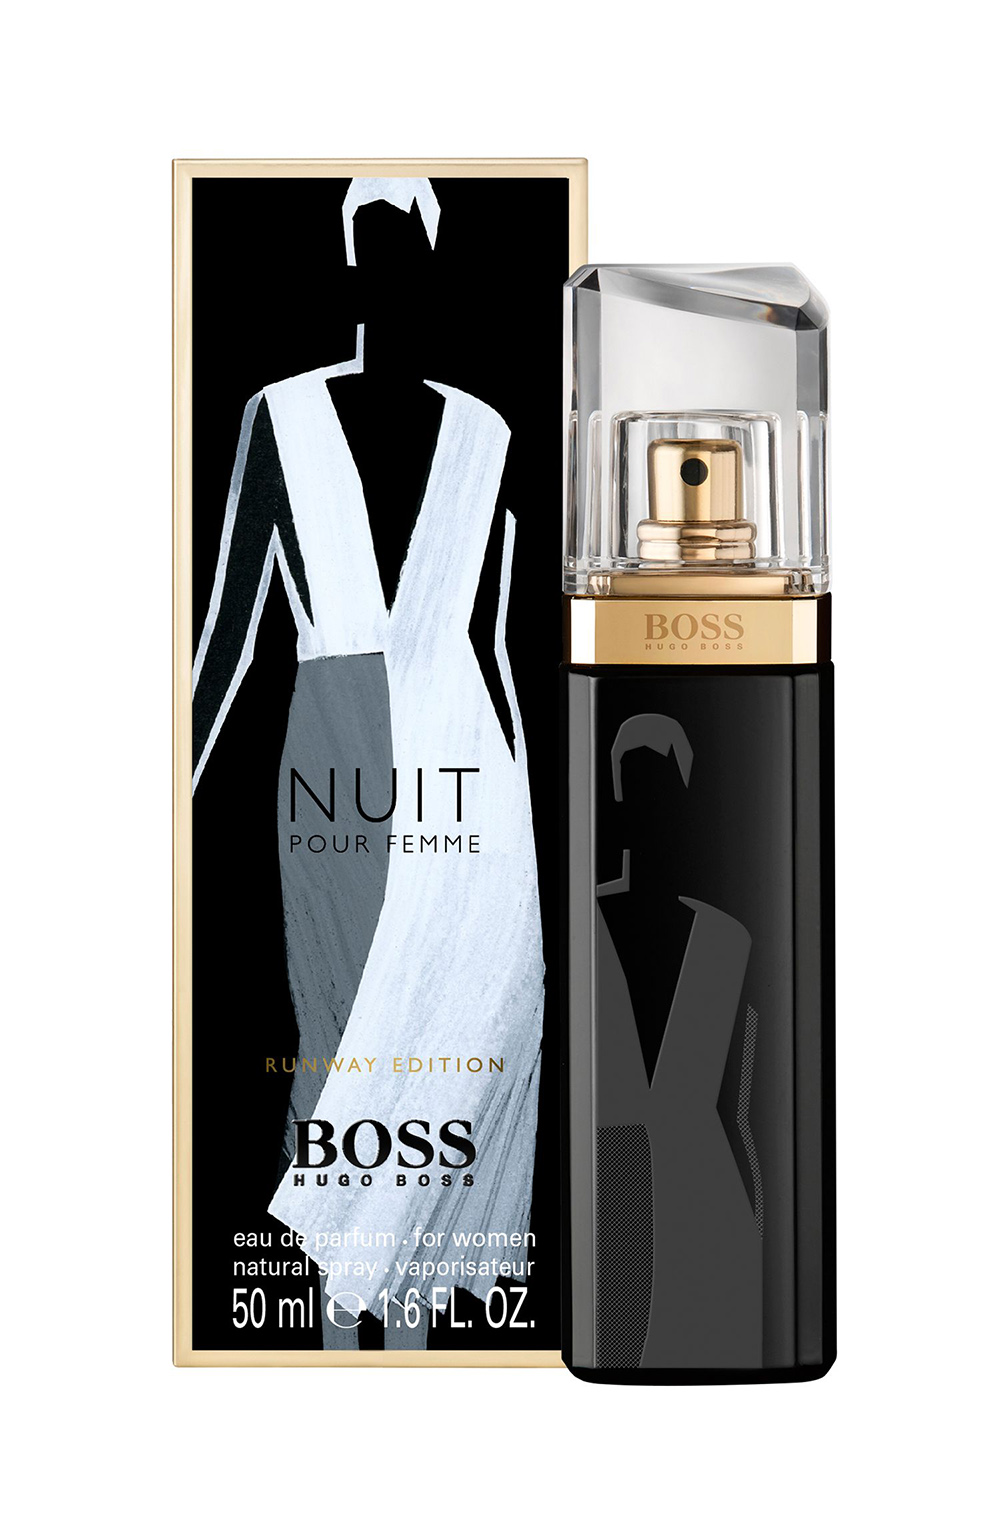 boss nuit pour femme runway edition hugo boss perfume a. Black Bedroom Furniture Sets. Home Design Ideas